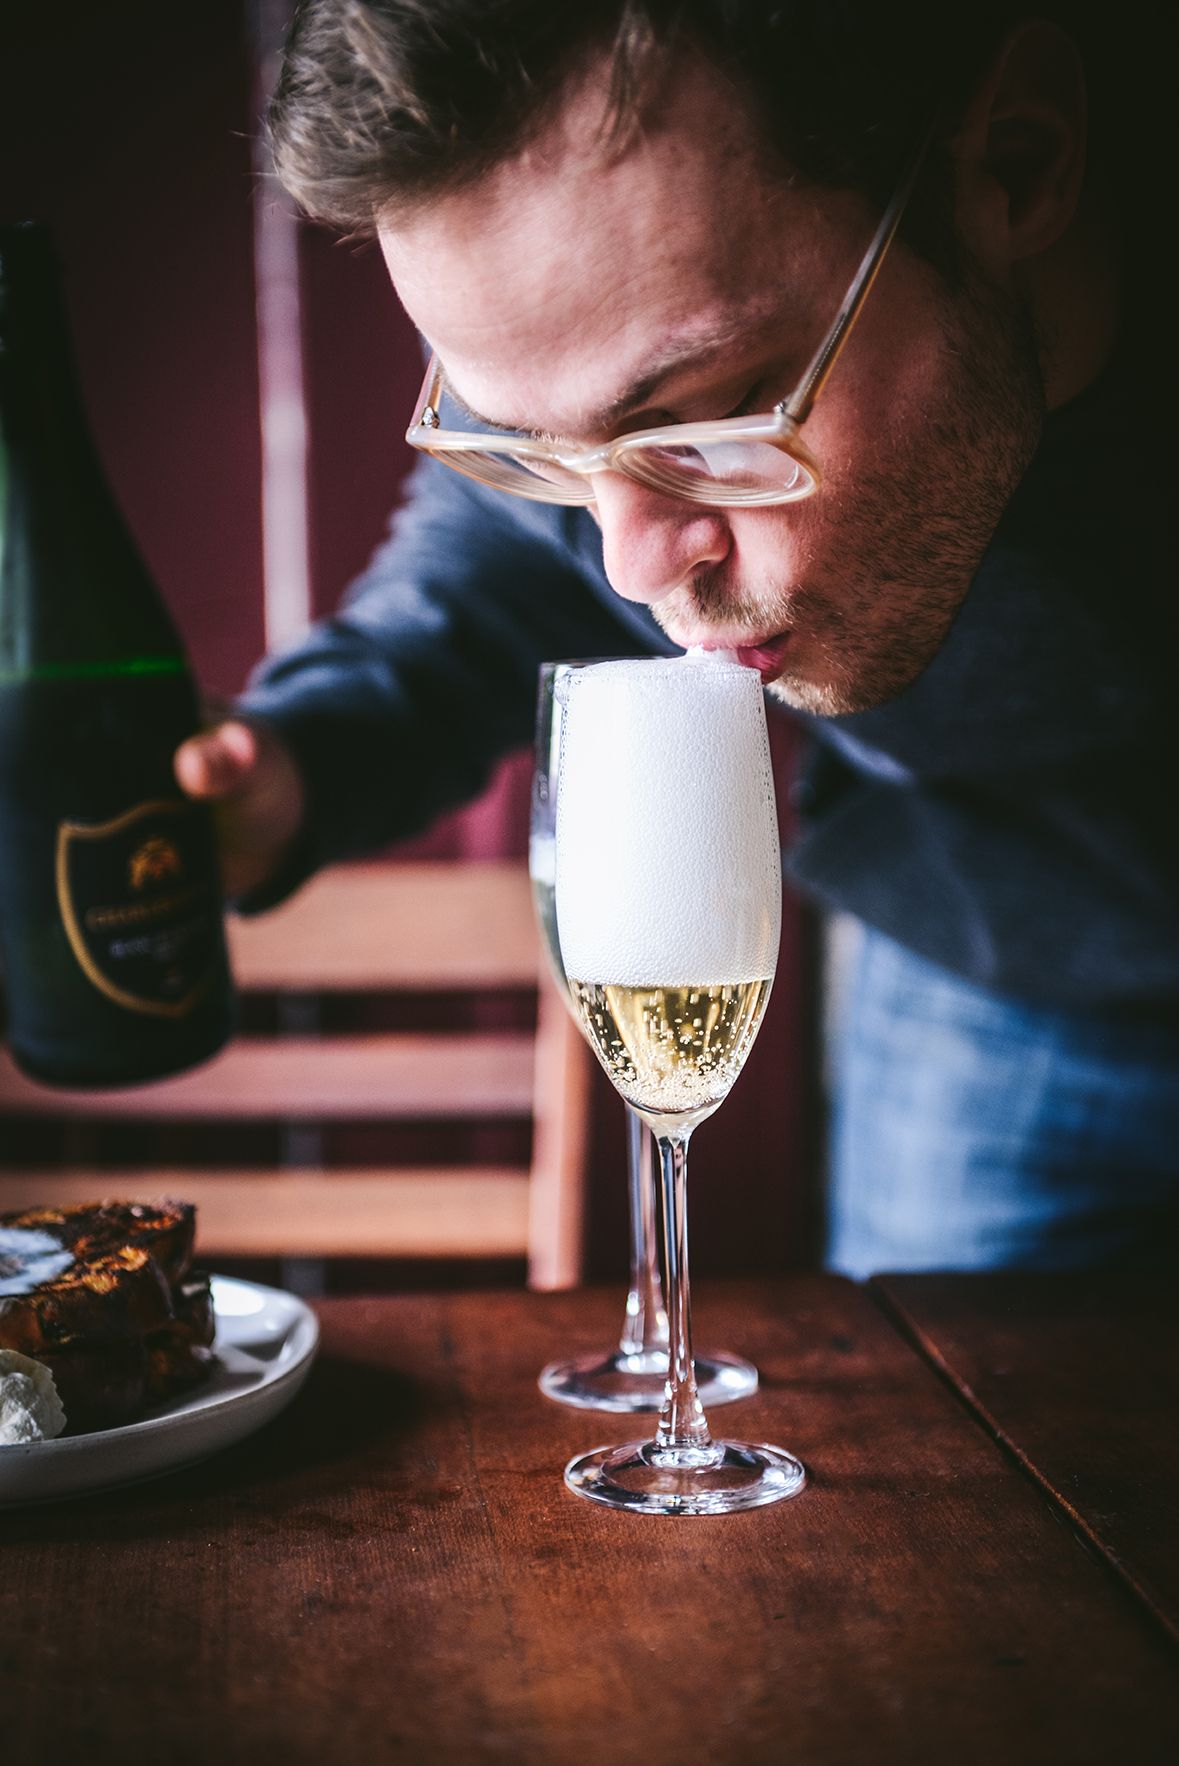 Champagne, Pork Chops & Presents: How We Christmas'd in 2018